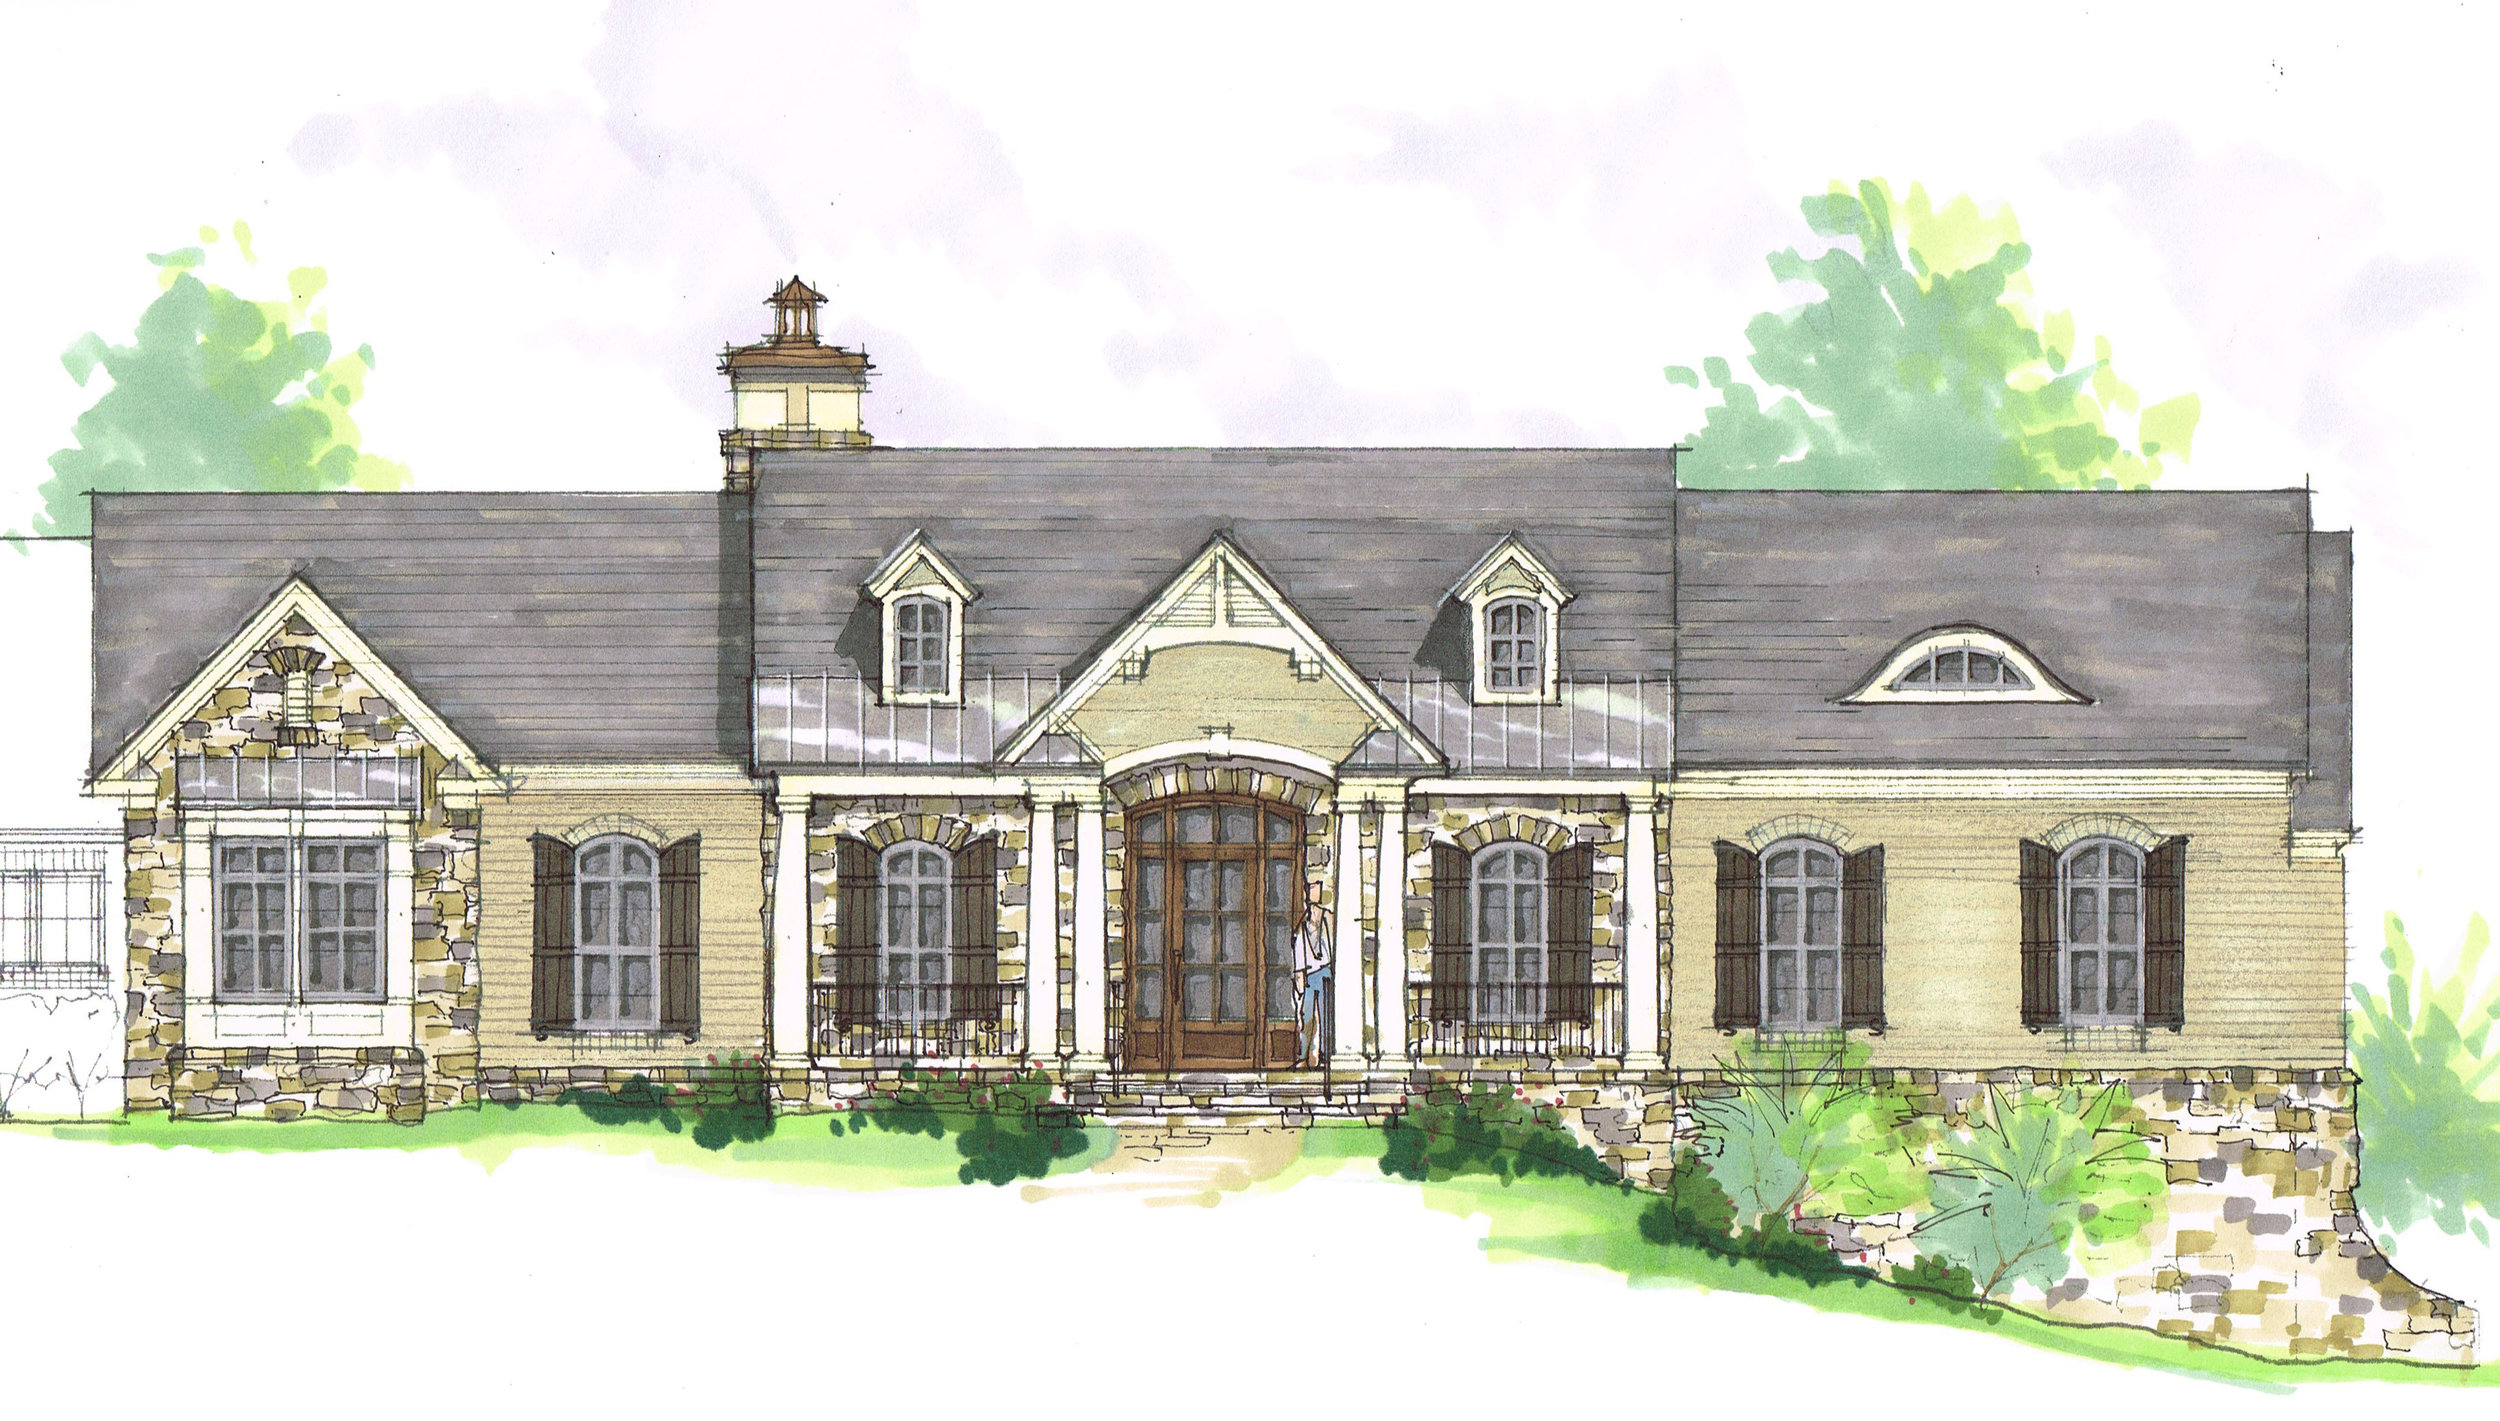 Davies Front Elevation Resized - A.jpg